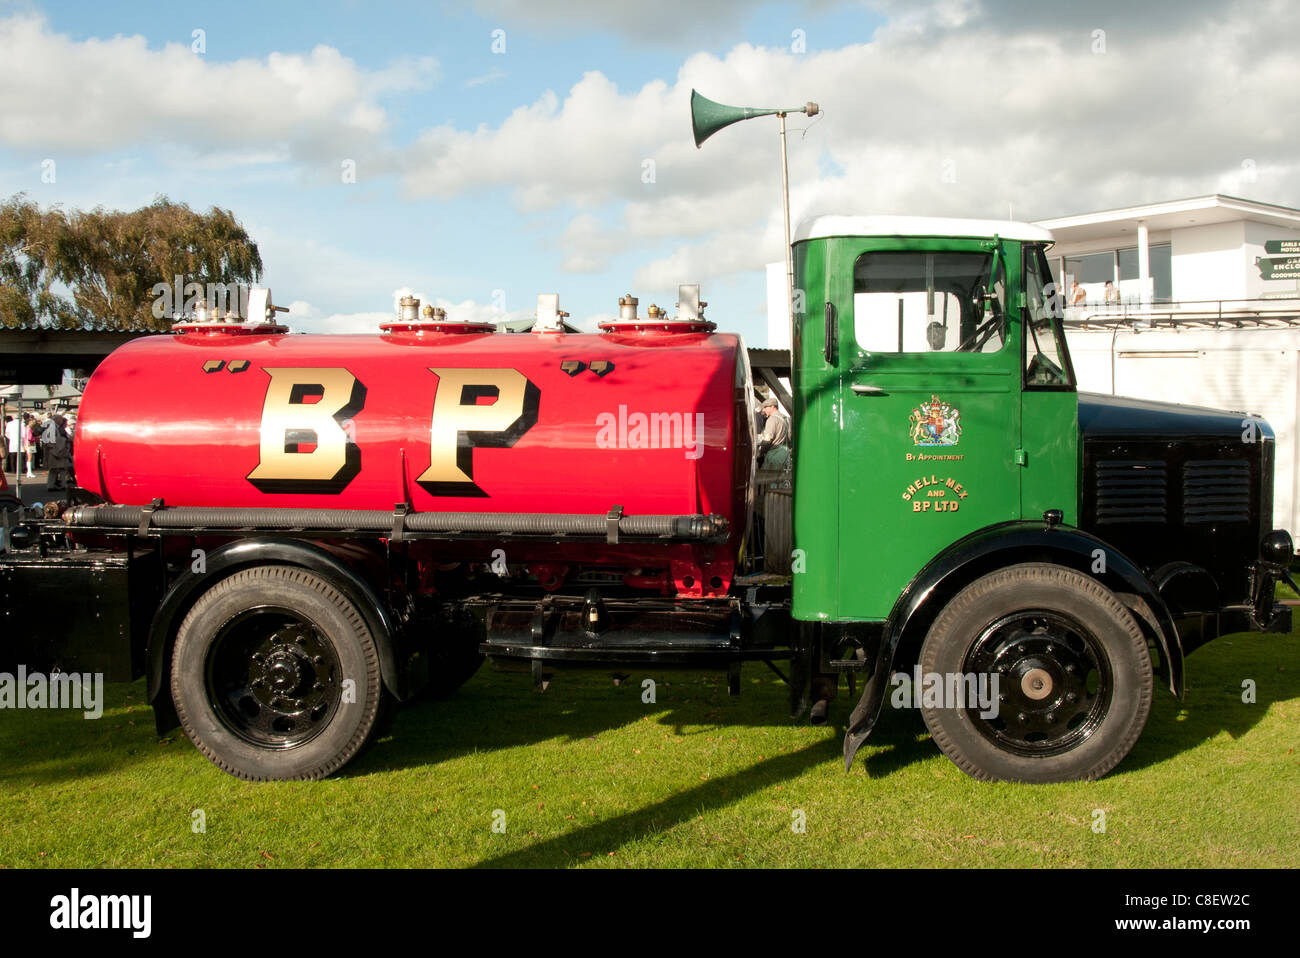 Vintage BP Benzin Tanker beim Goodwood Revival Stockbild